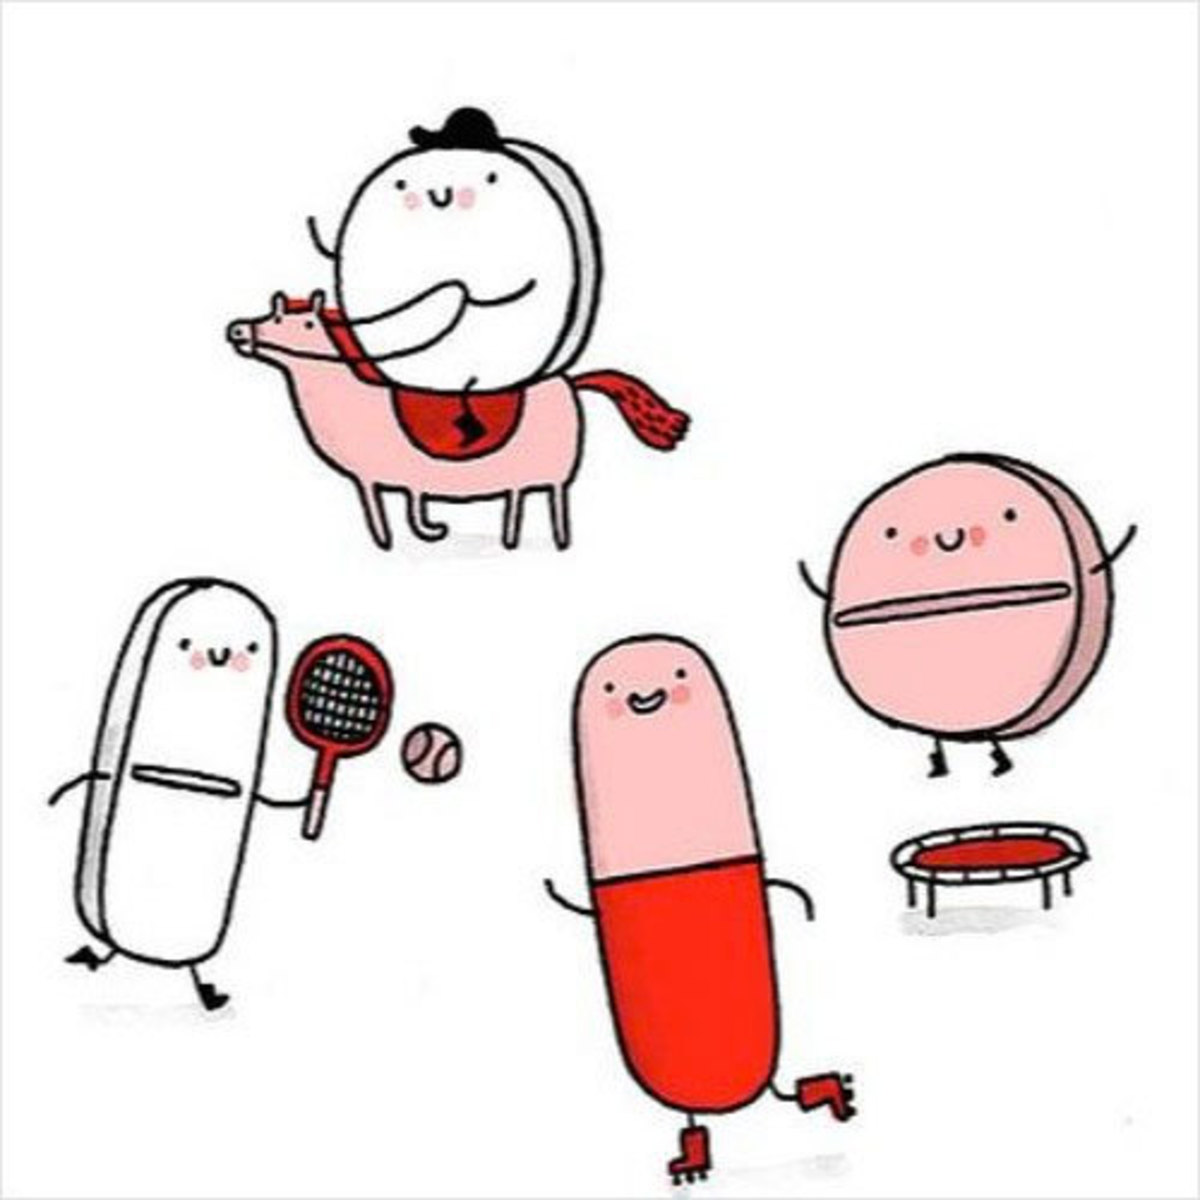 james-fauntleroy-harmless-drugs.jpg